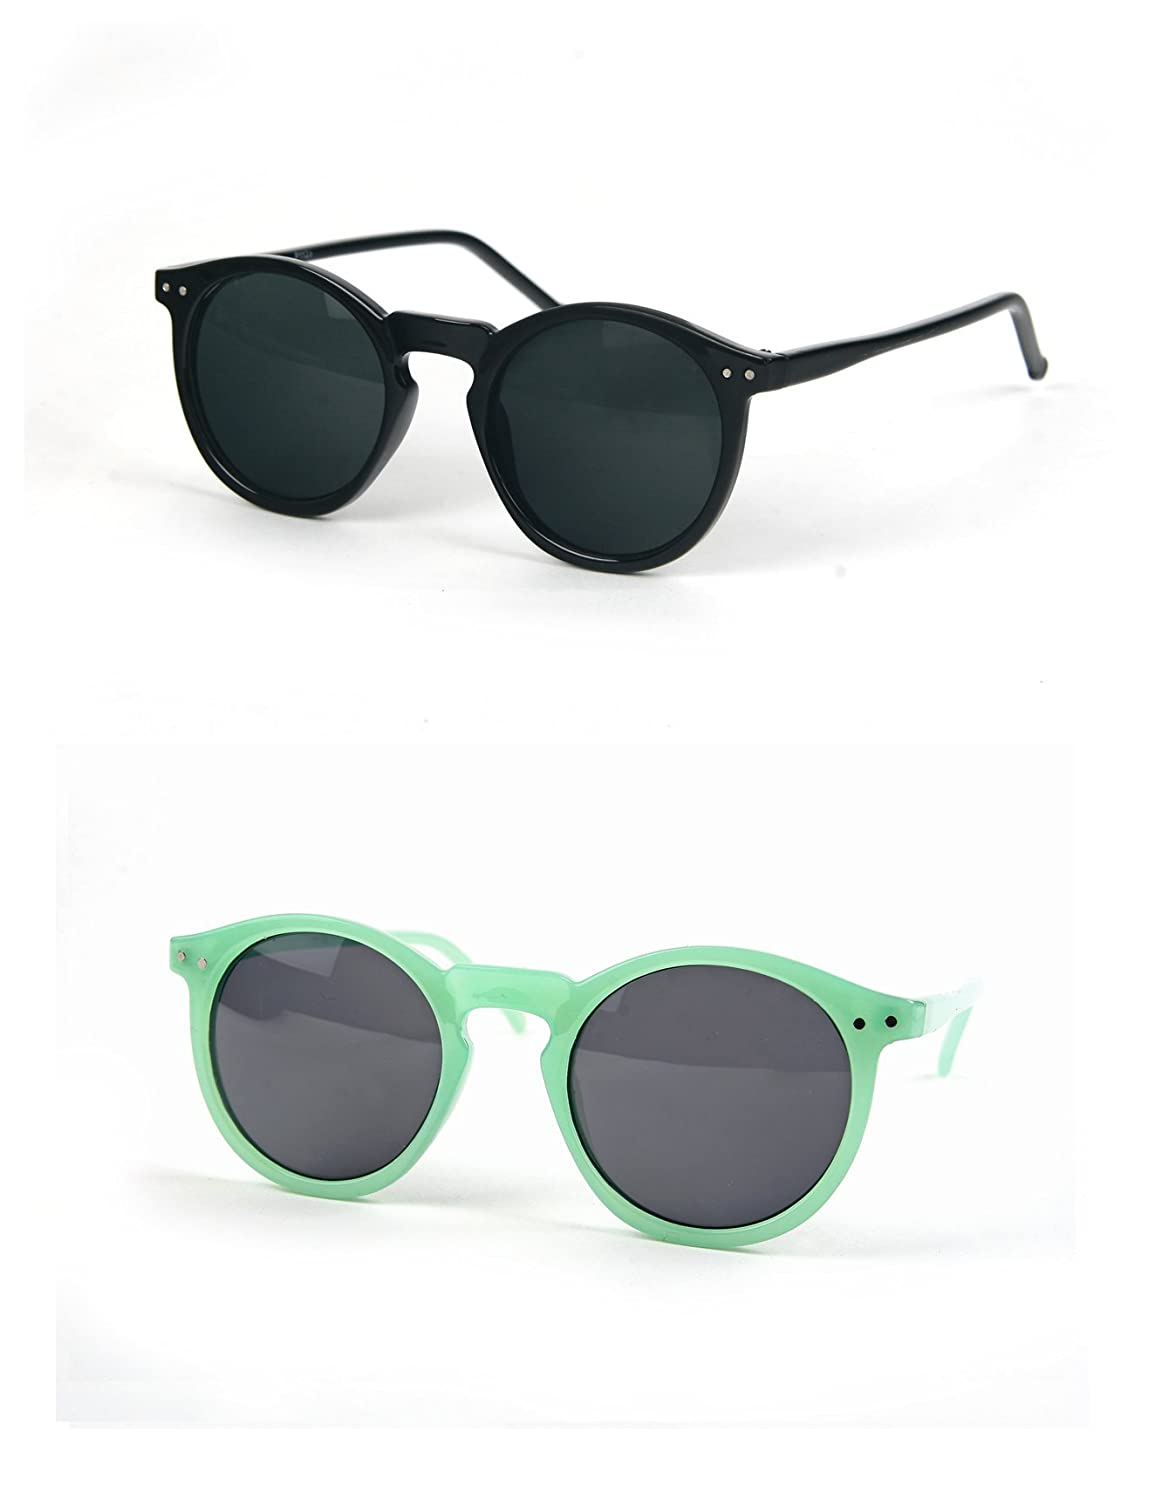 Women Retro Round Wayfarer Sunglasses P1123 (2 pcs Black-Smoke & PaleGreen-Smoke)